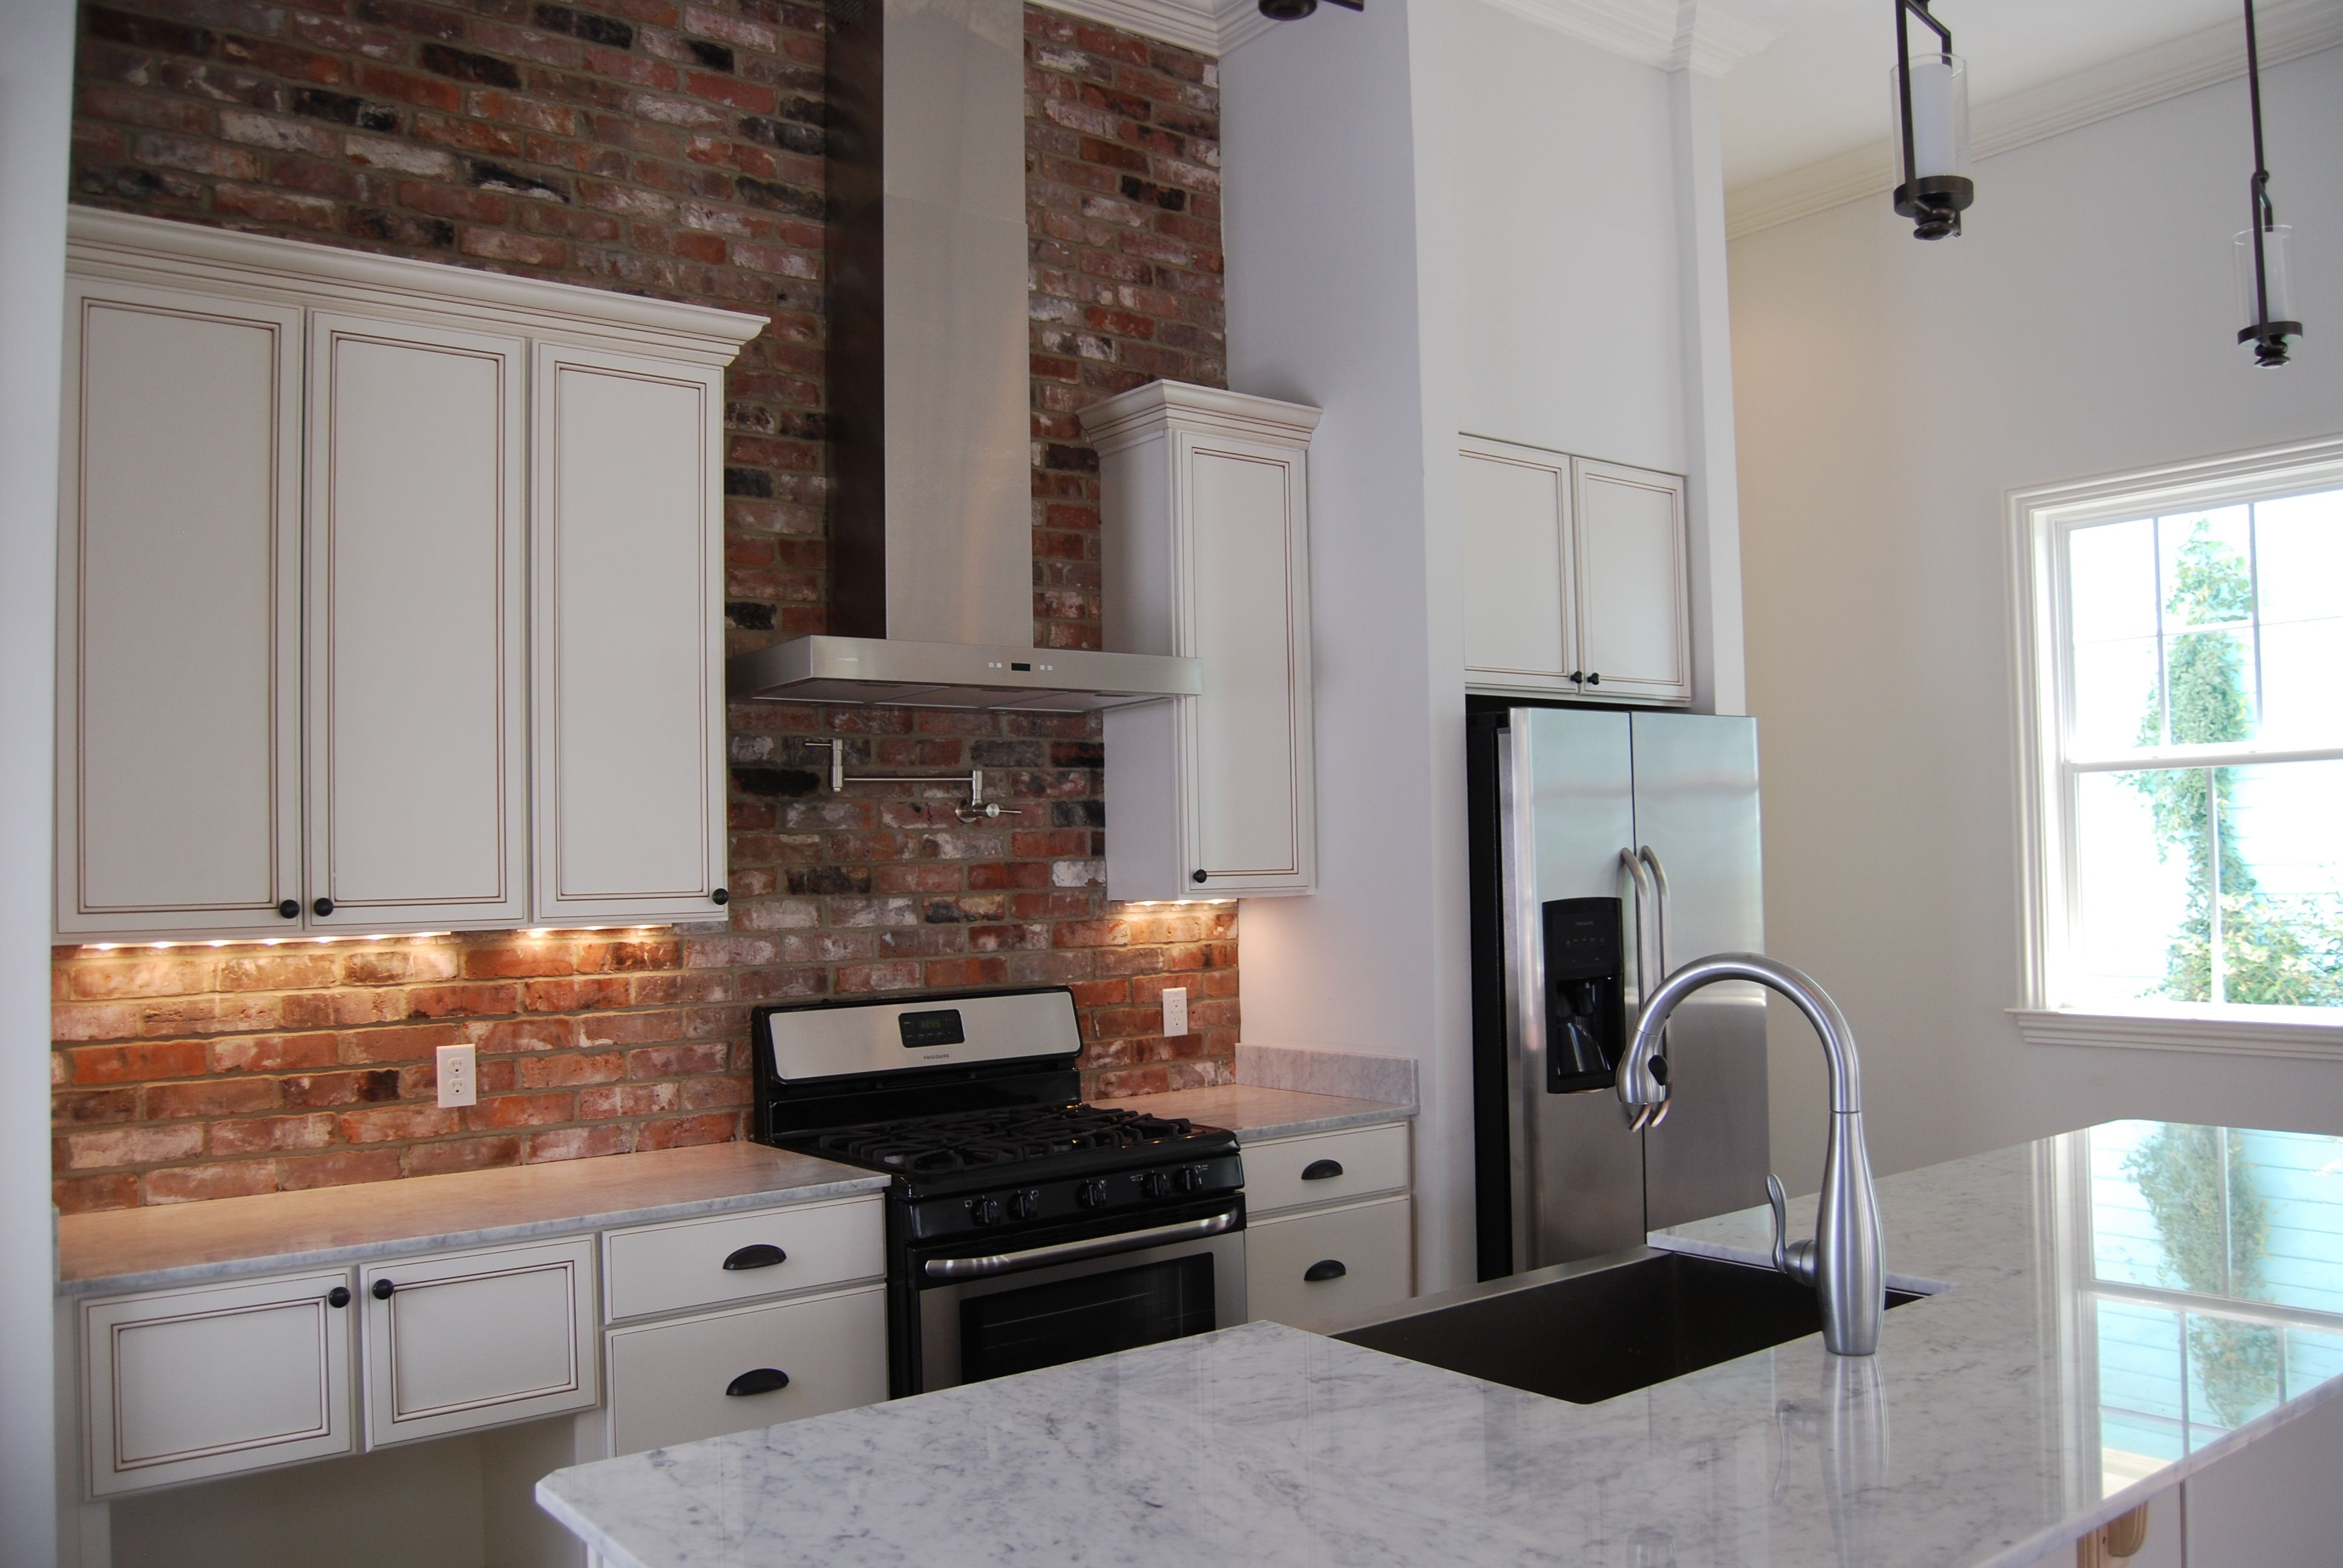 Solid Wood Cabinets With Mocha Glaze, White Carrara Marble Countertops,  Repurposed Old Chicago Brick Backsplash, Stainless Steel Appliances,  Brushed Nickel ...